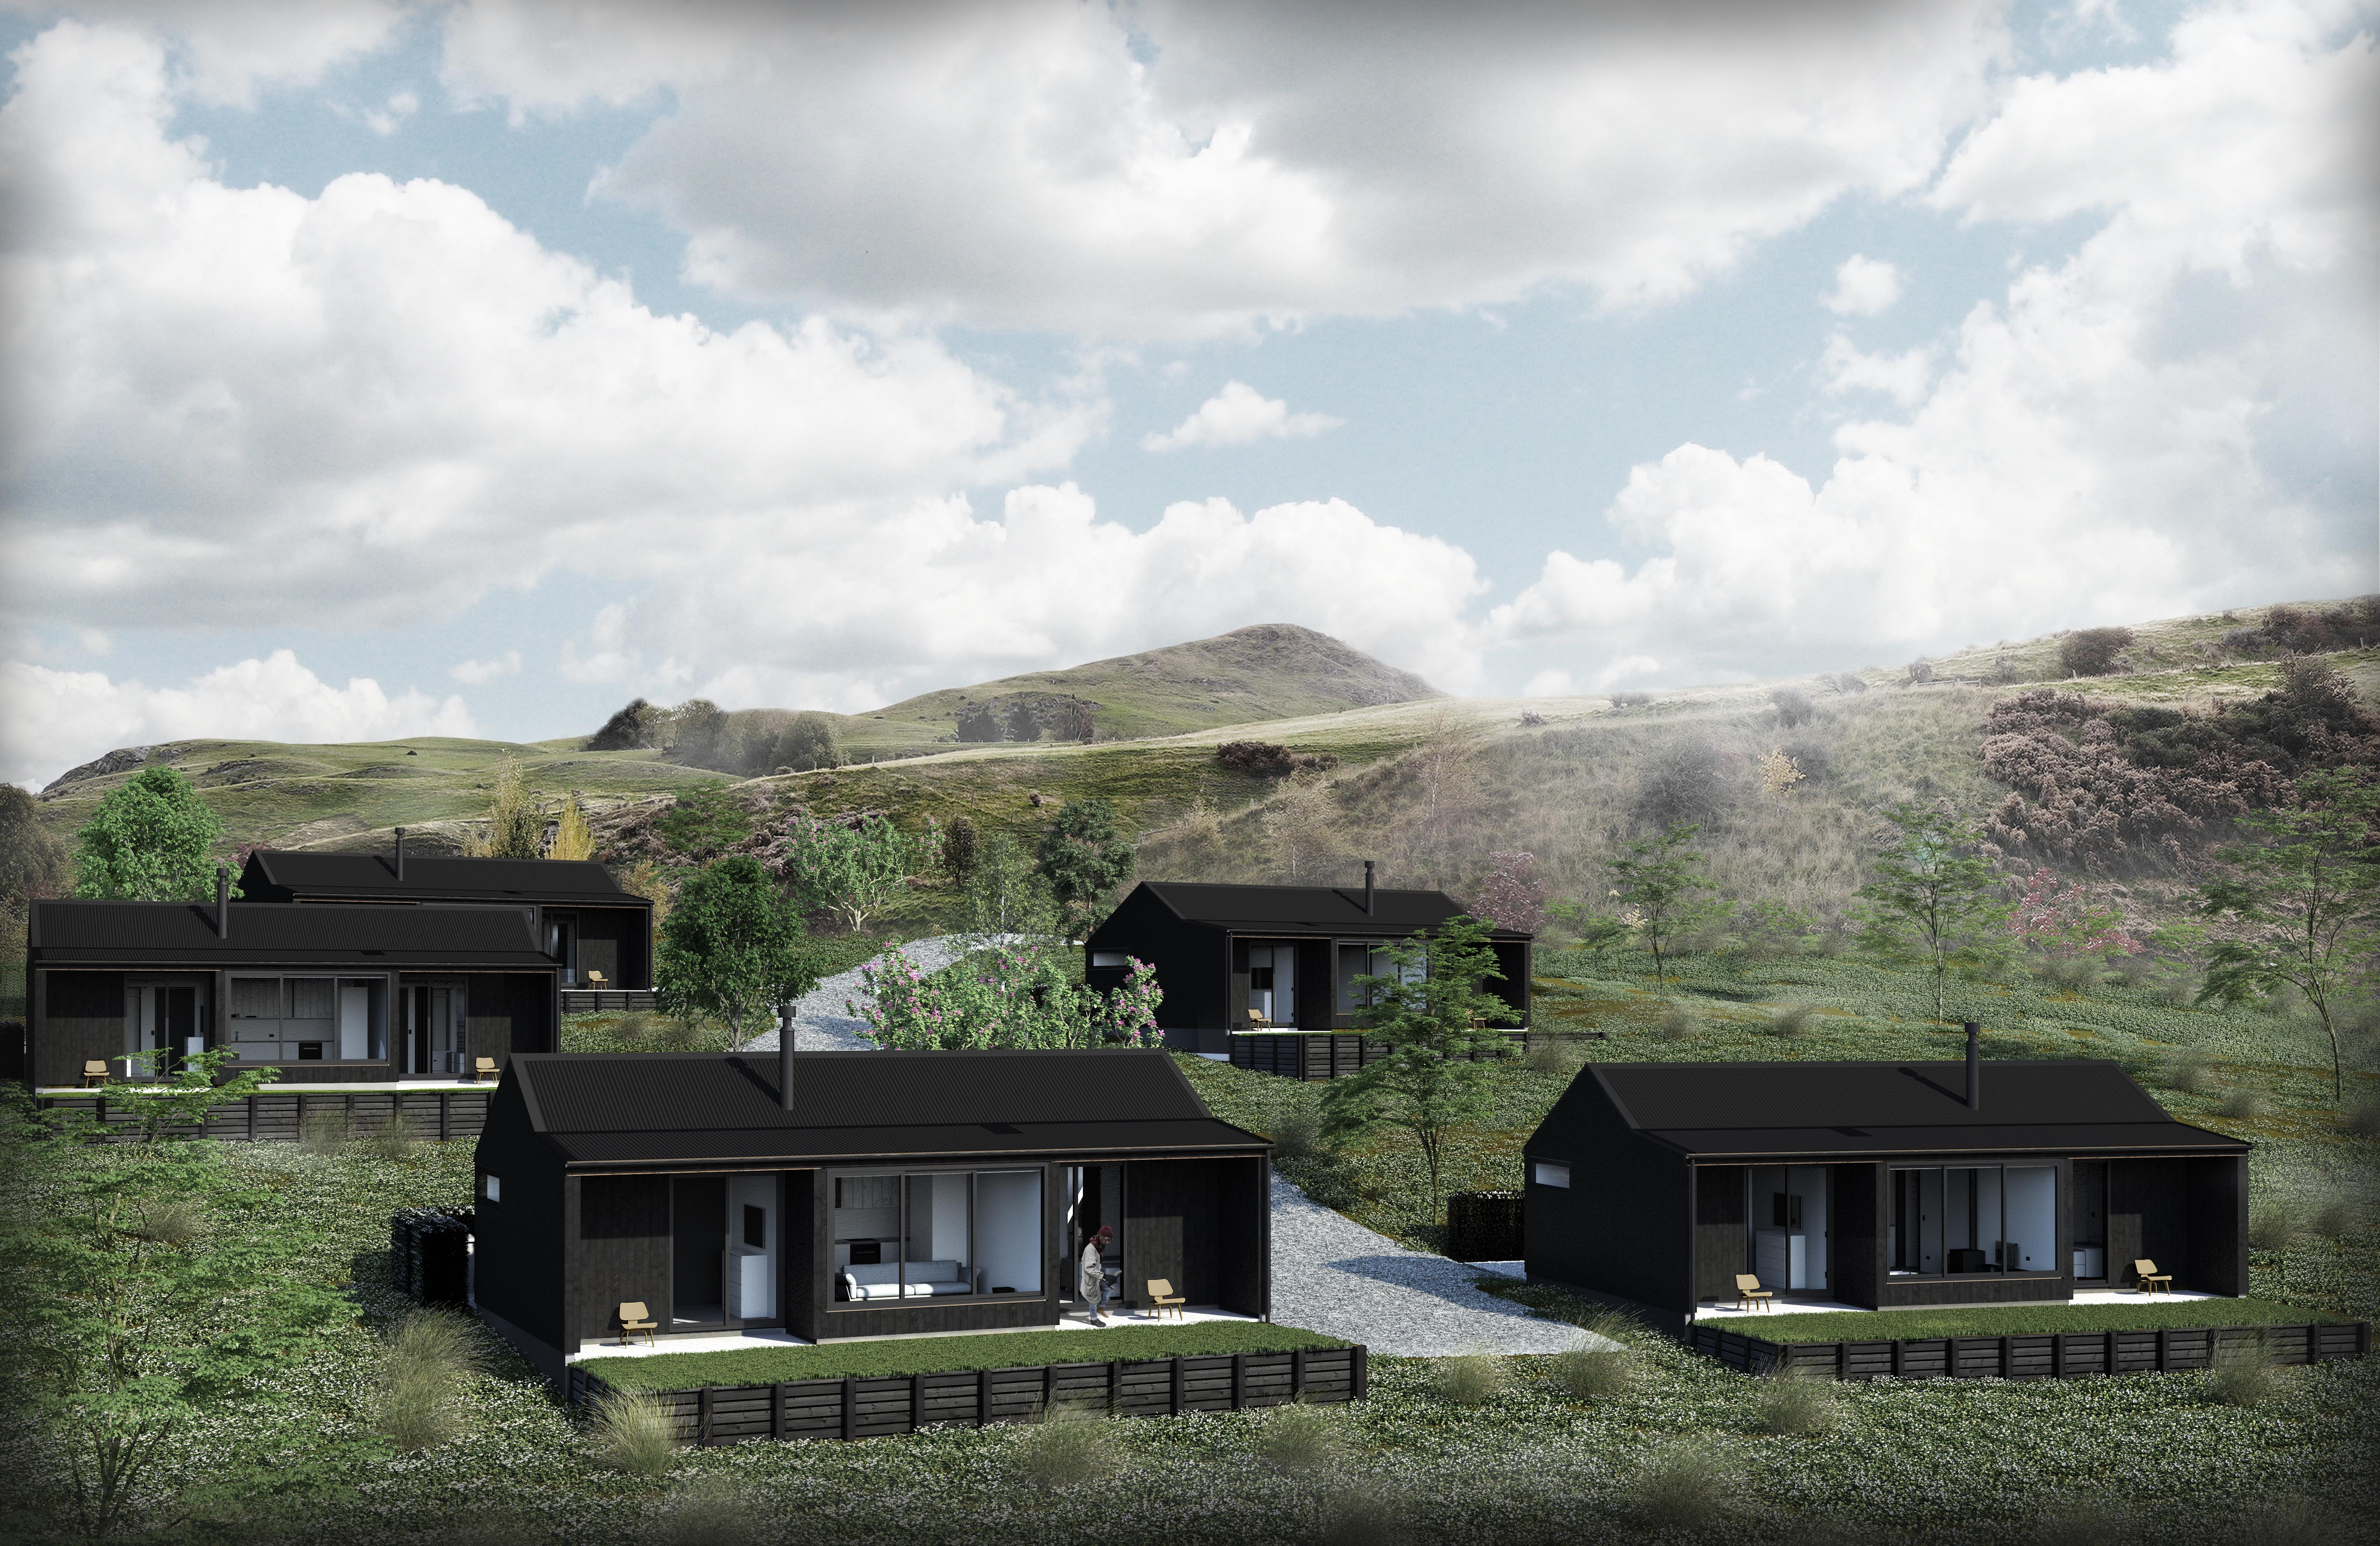 Lake Hayes Farm Cottages by Assembly Architects Arrowtown, Queenstown.  Unique rural accommodation in a historic lake side setting.